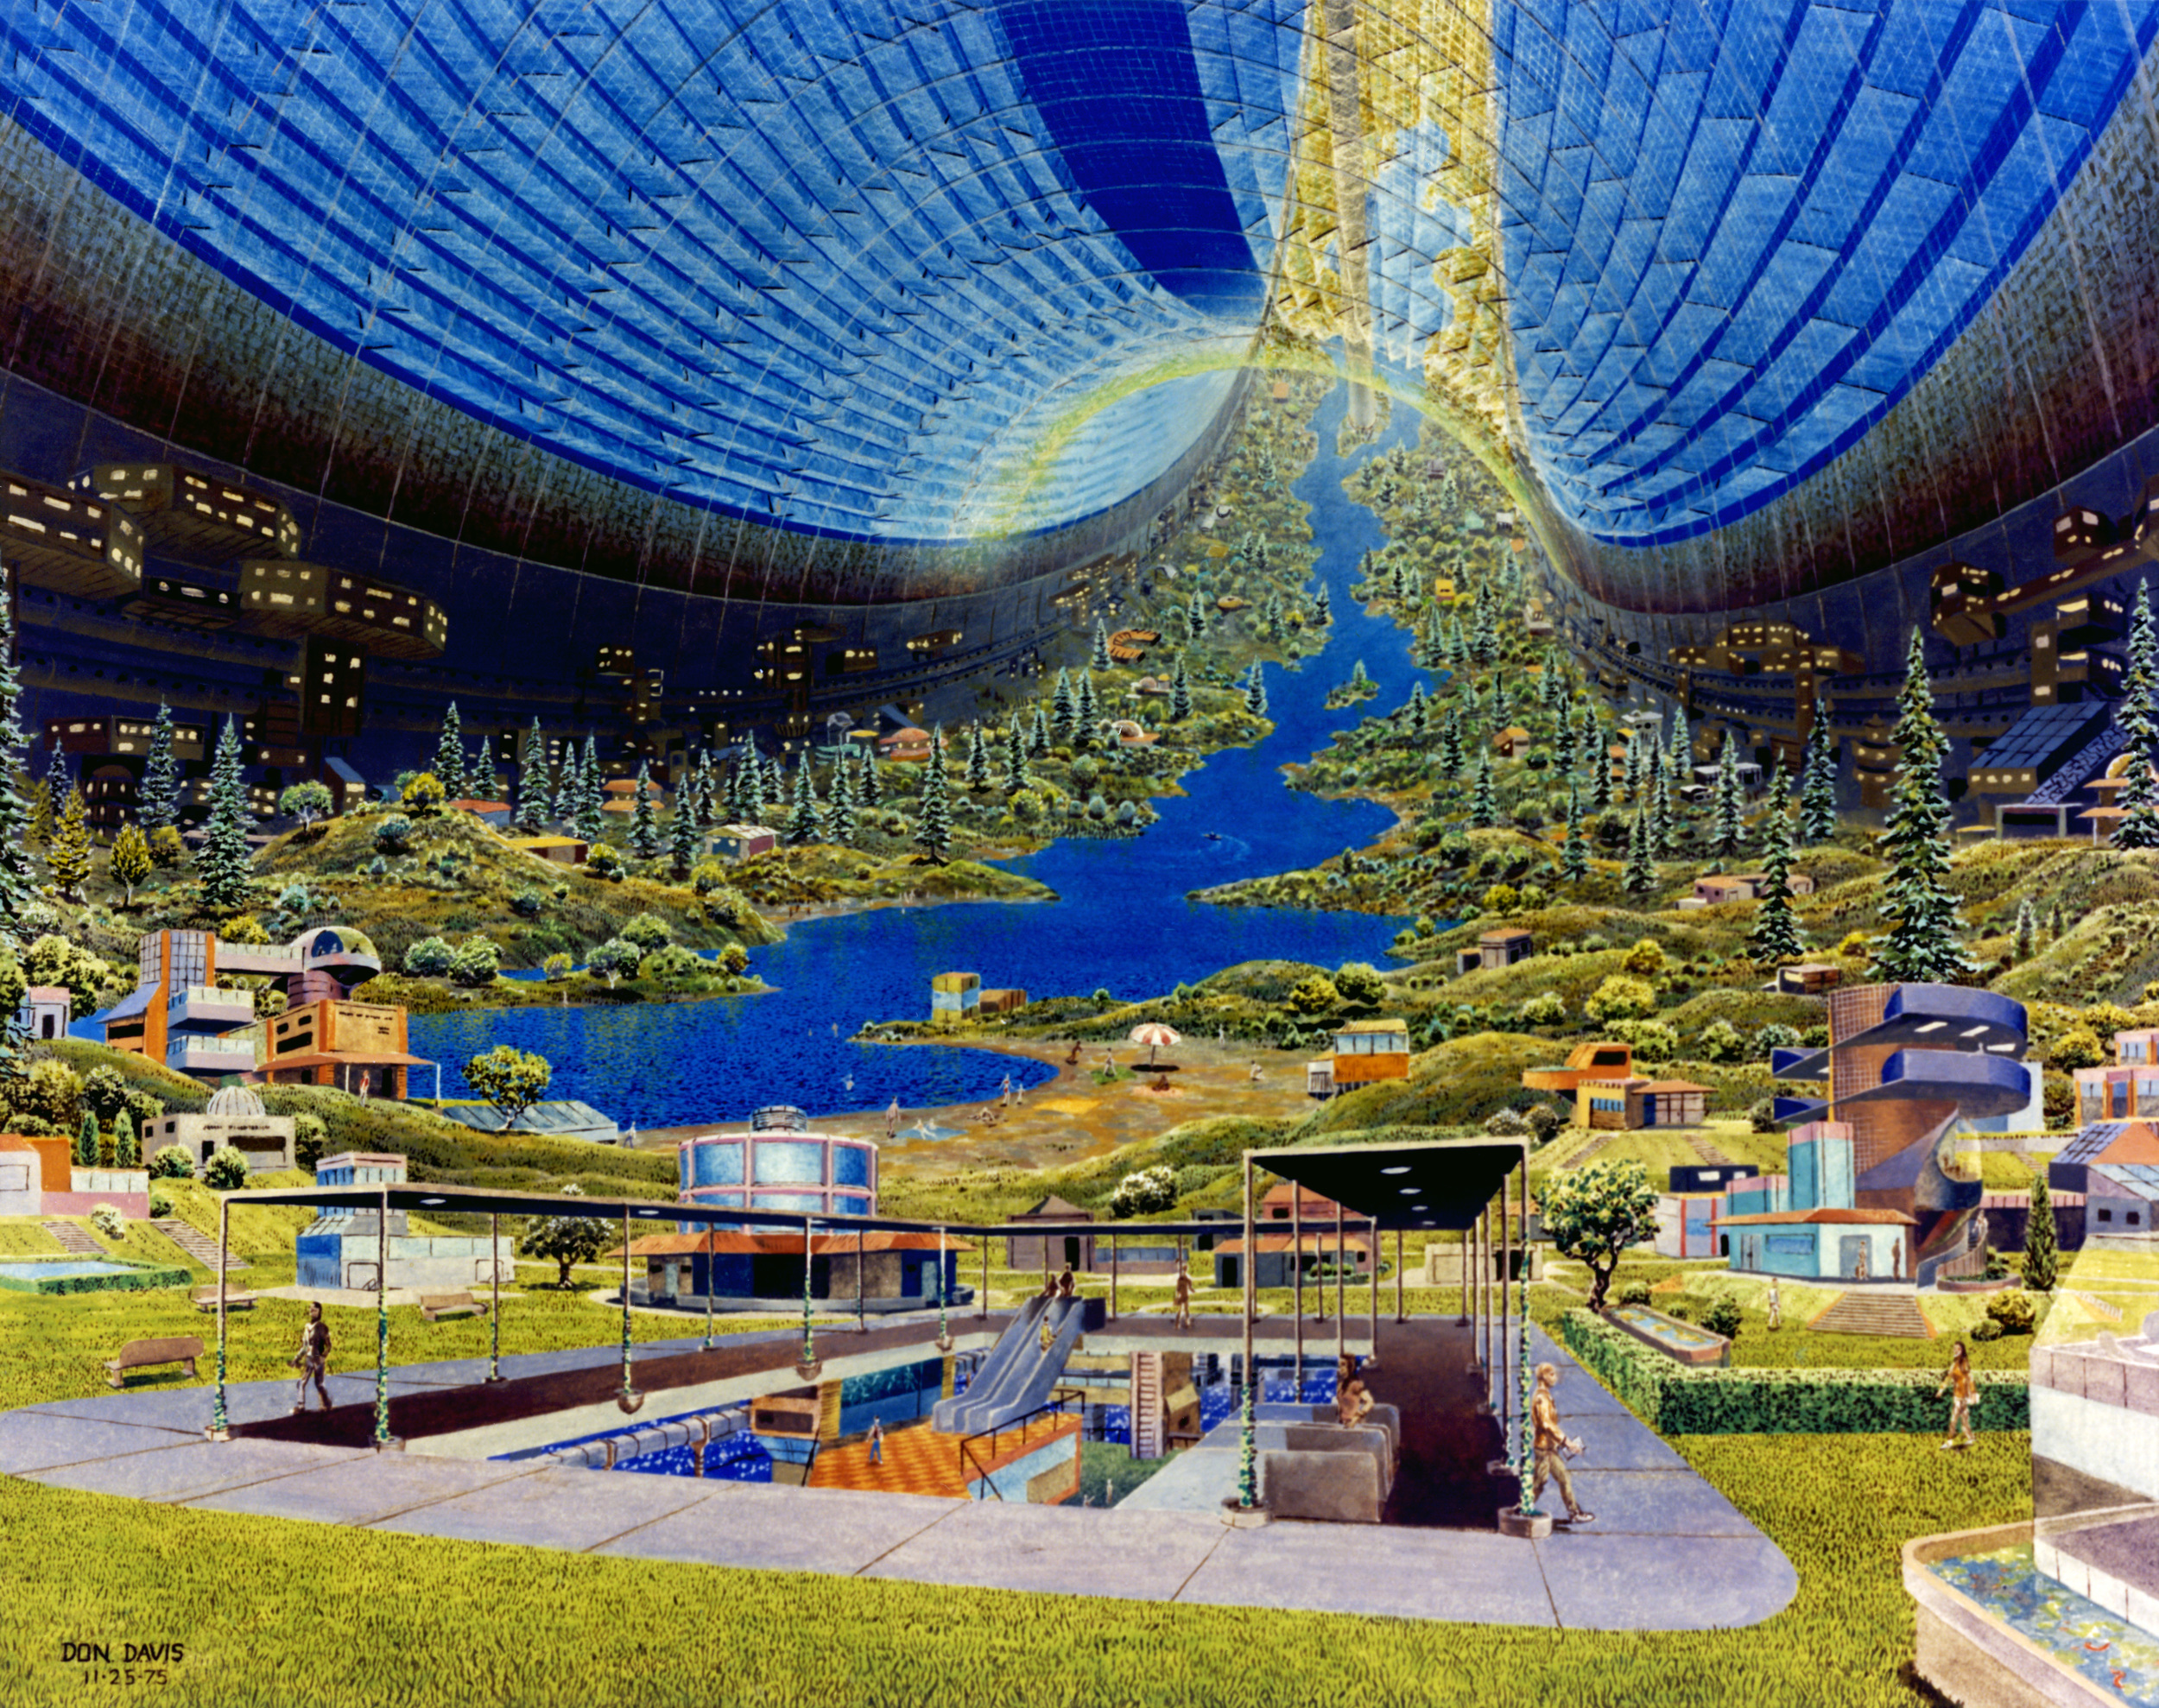 Internal view of the Stanford torus space station design